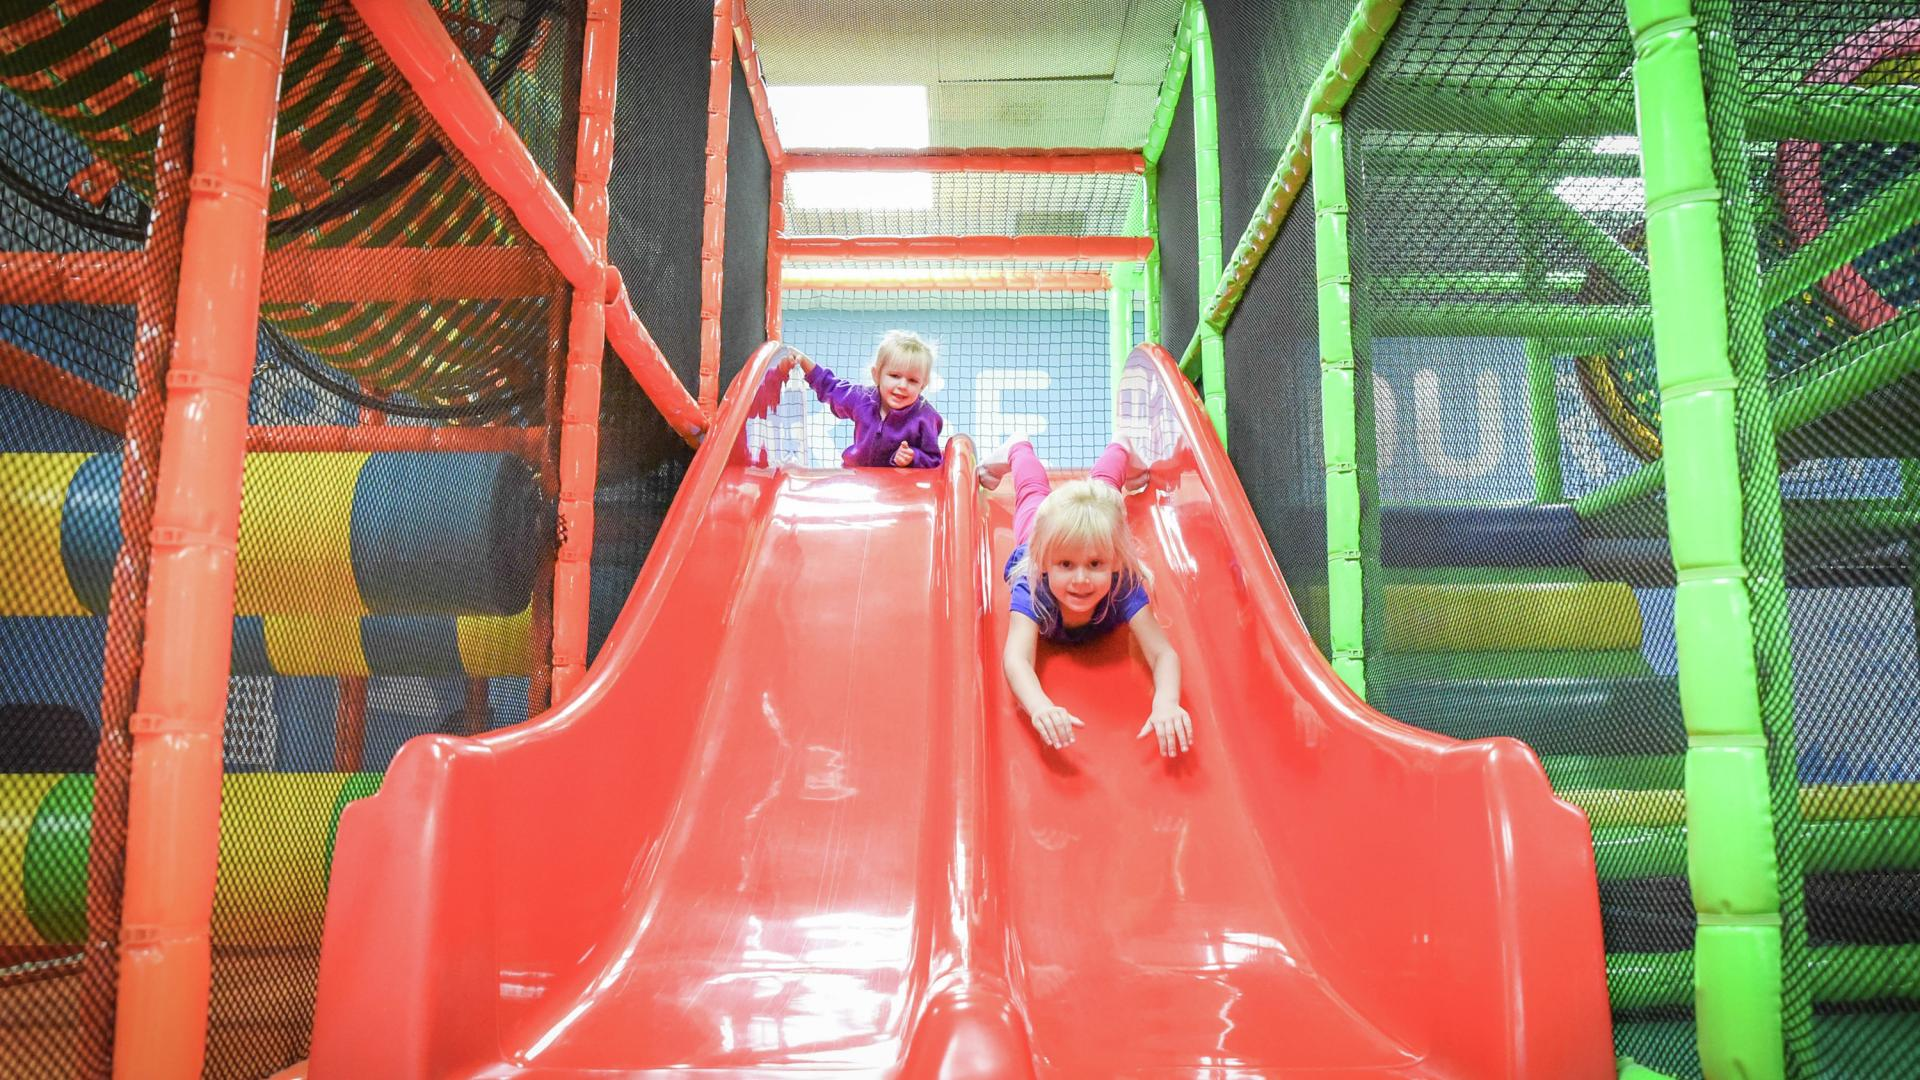 Kids on slide at indoor playground